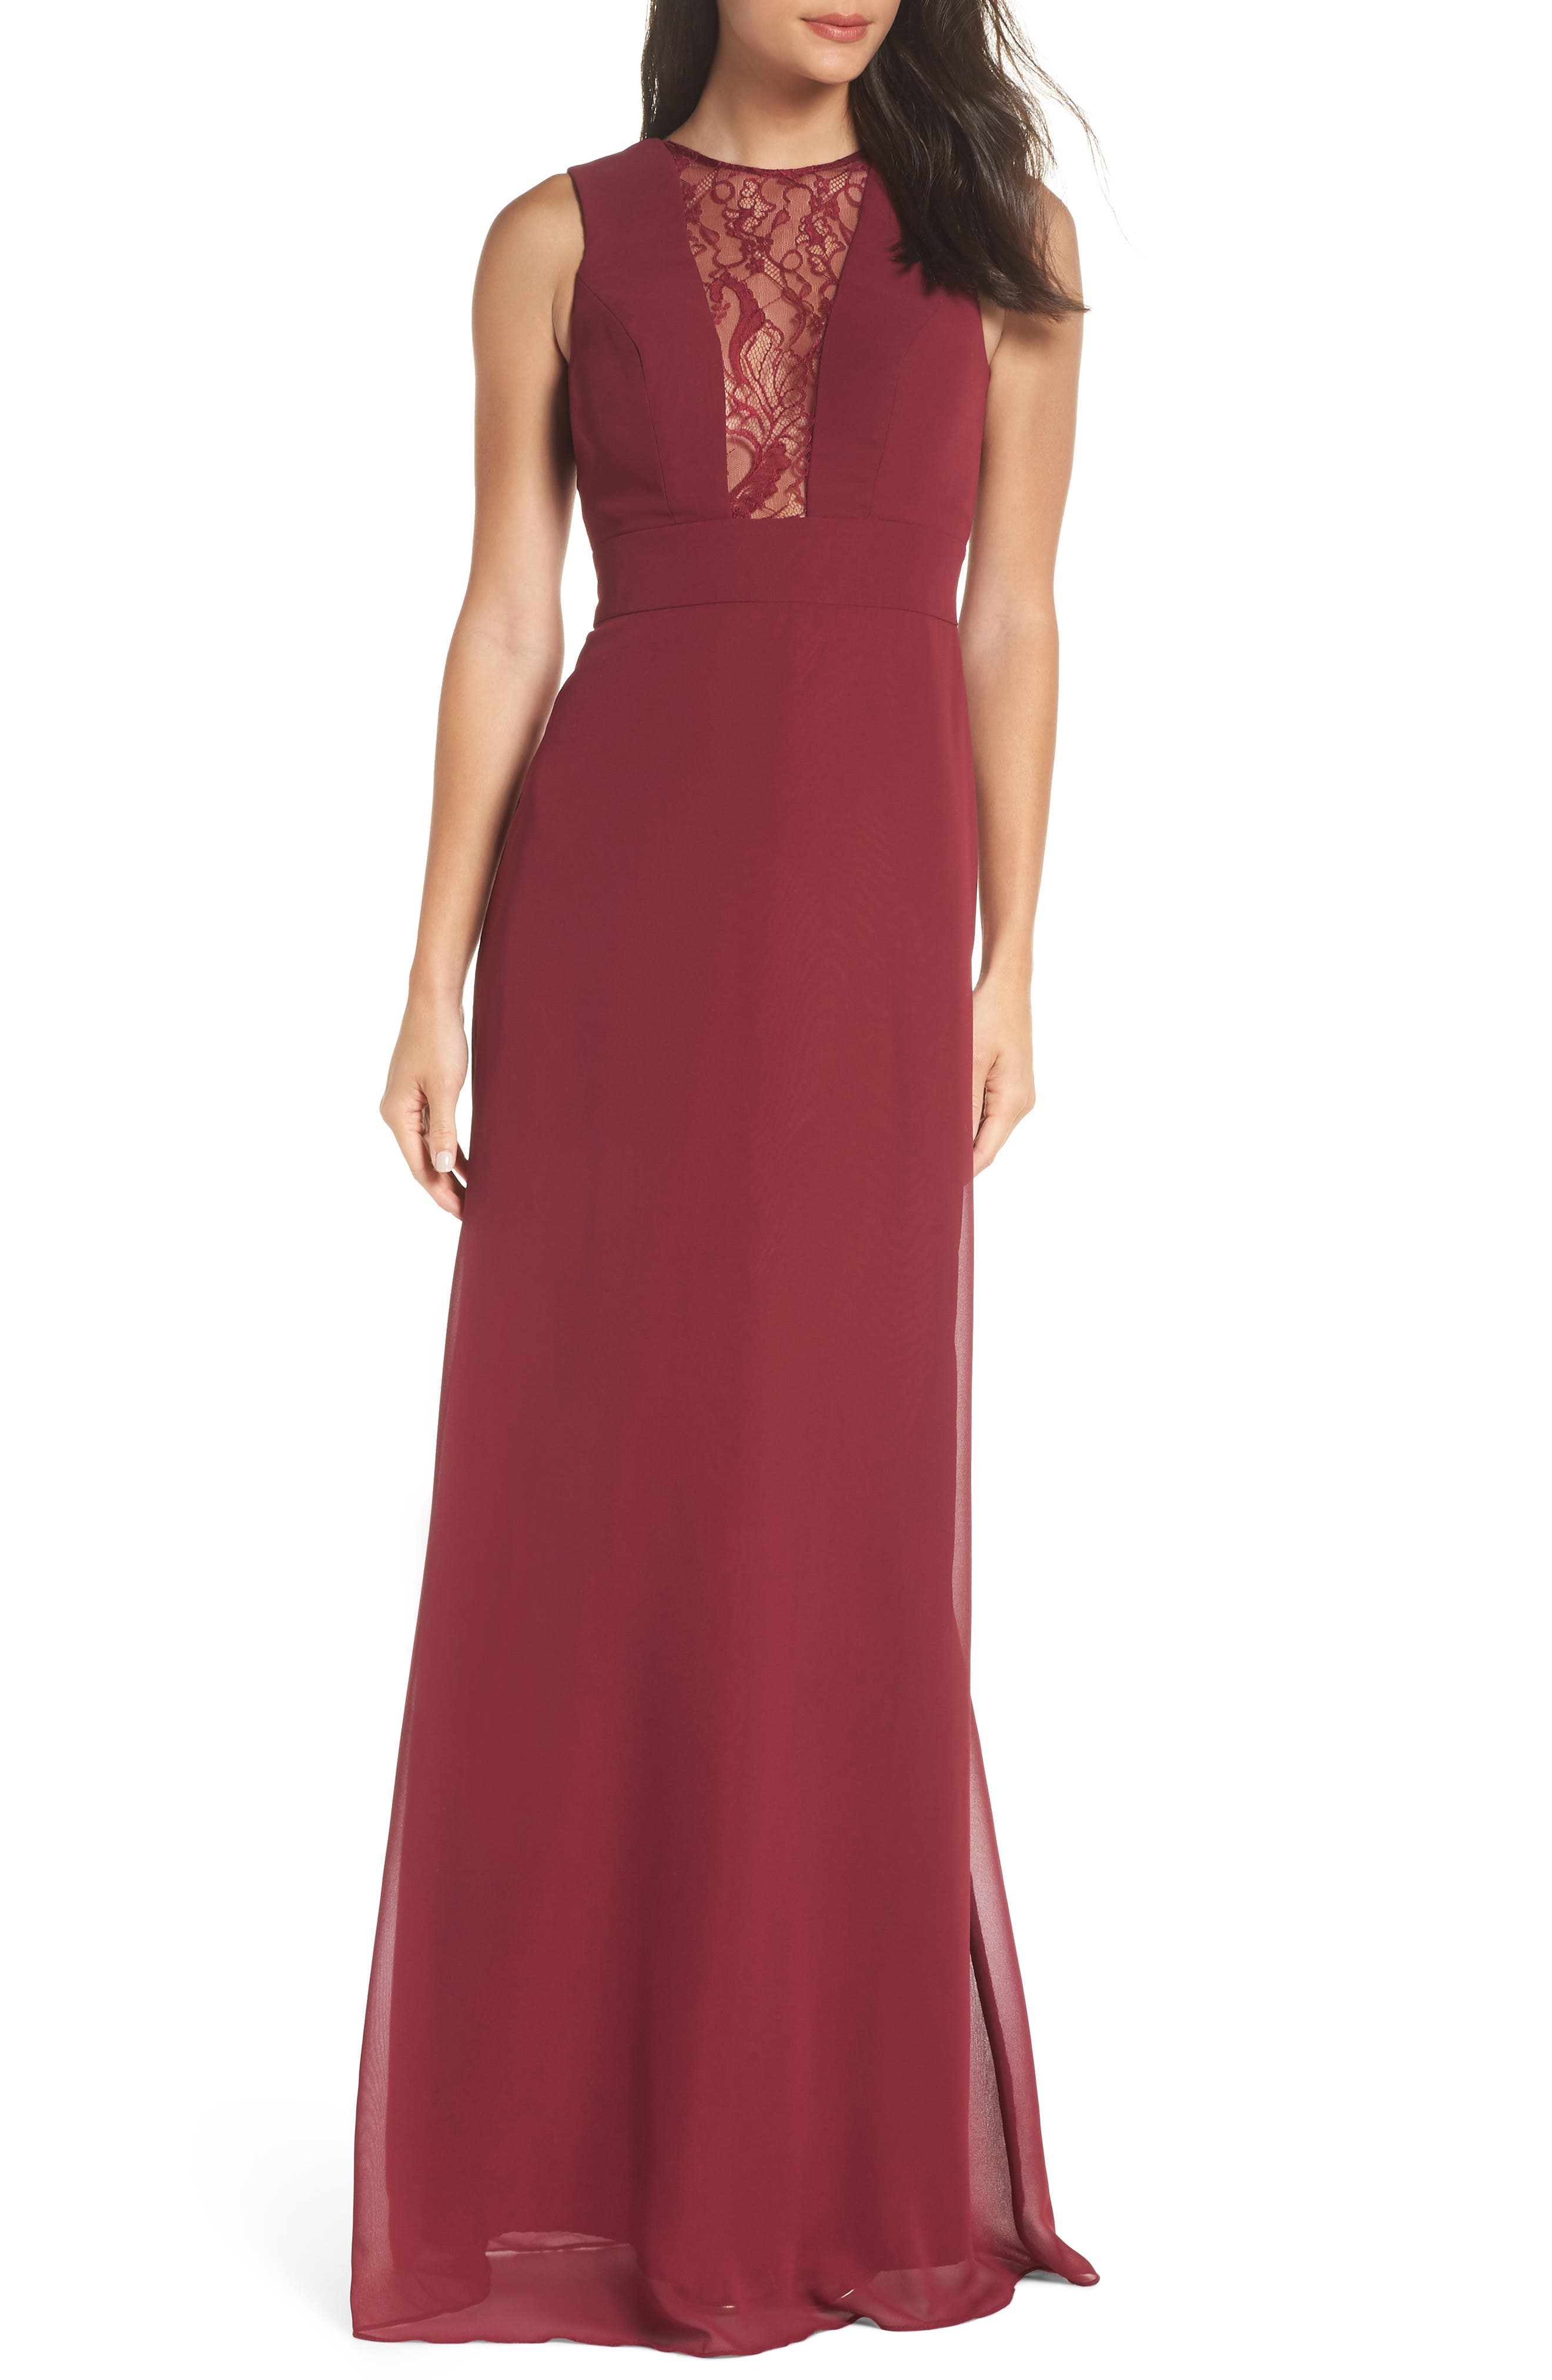 Hayley Paige Occasions Lace Inset Chiffon Gown, Burgundy